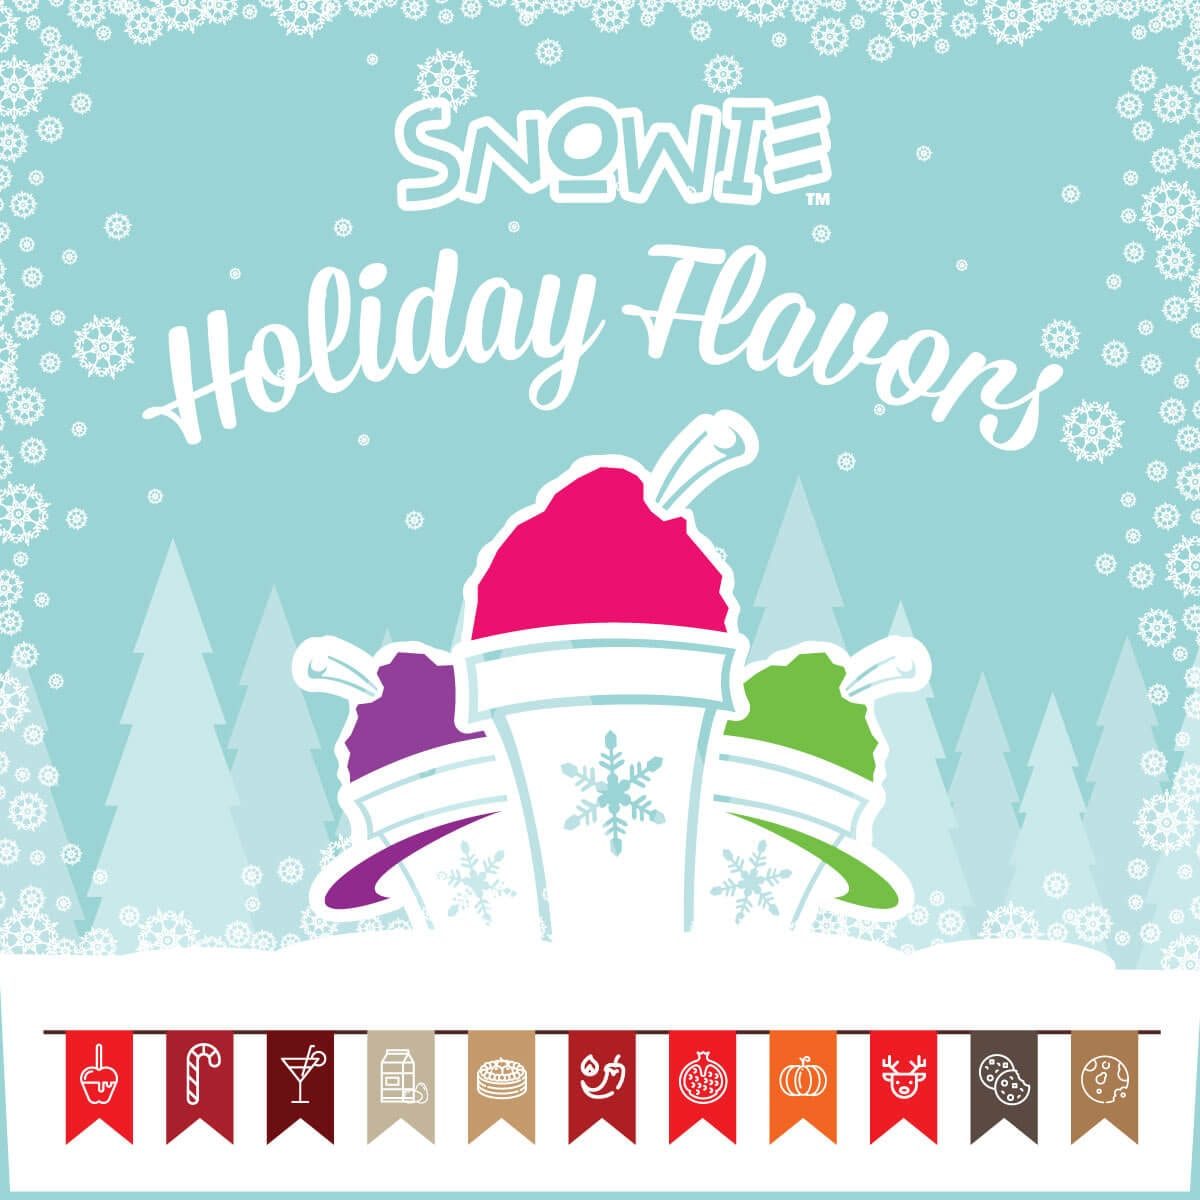 Snowie Holiday Flavors